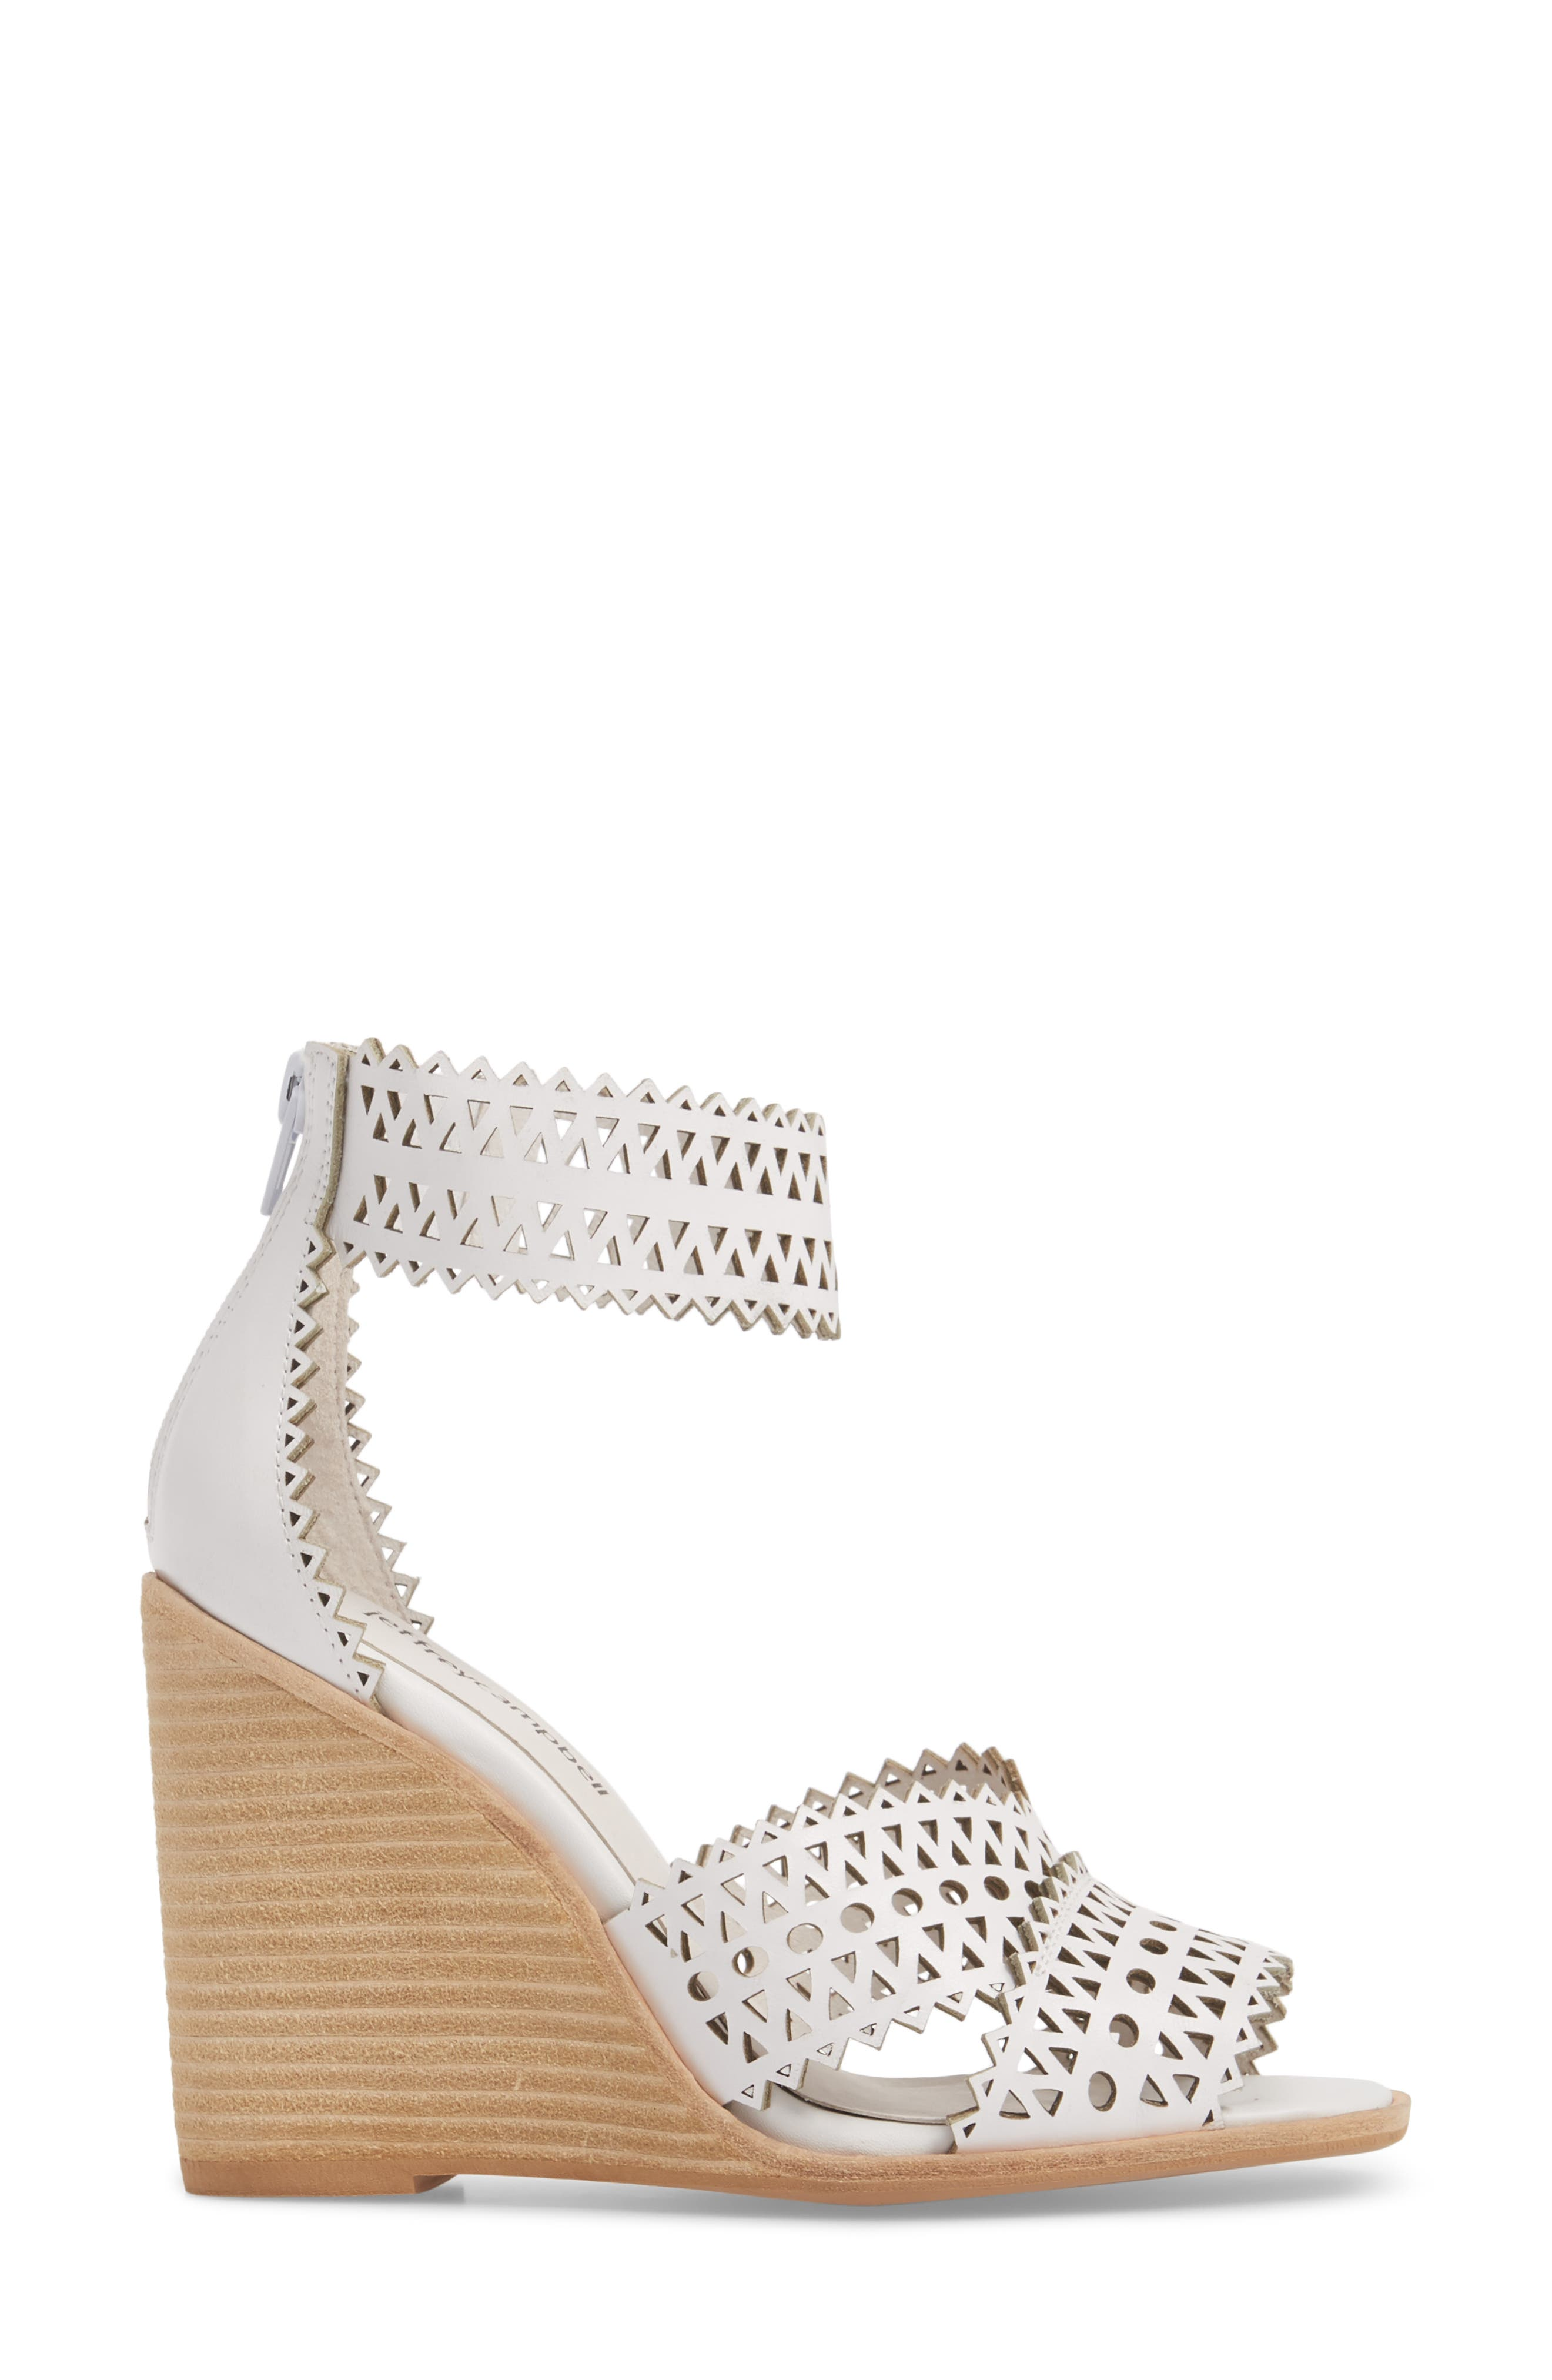 Besante Perforated Wedge Sandal,                             Alternate thumbnail 5, color,                             White